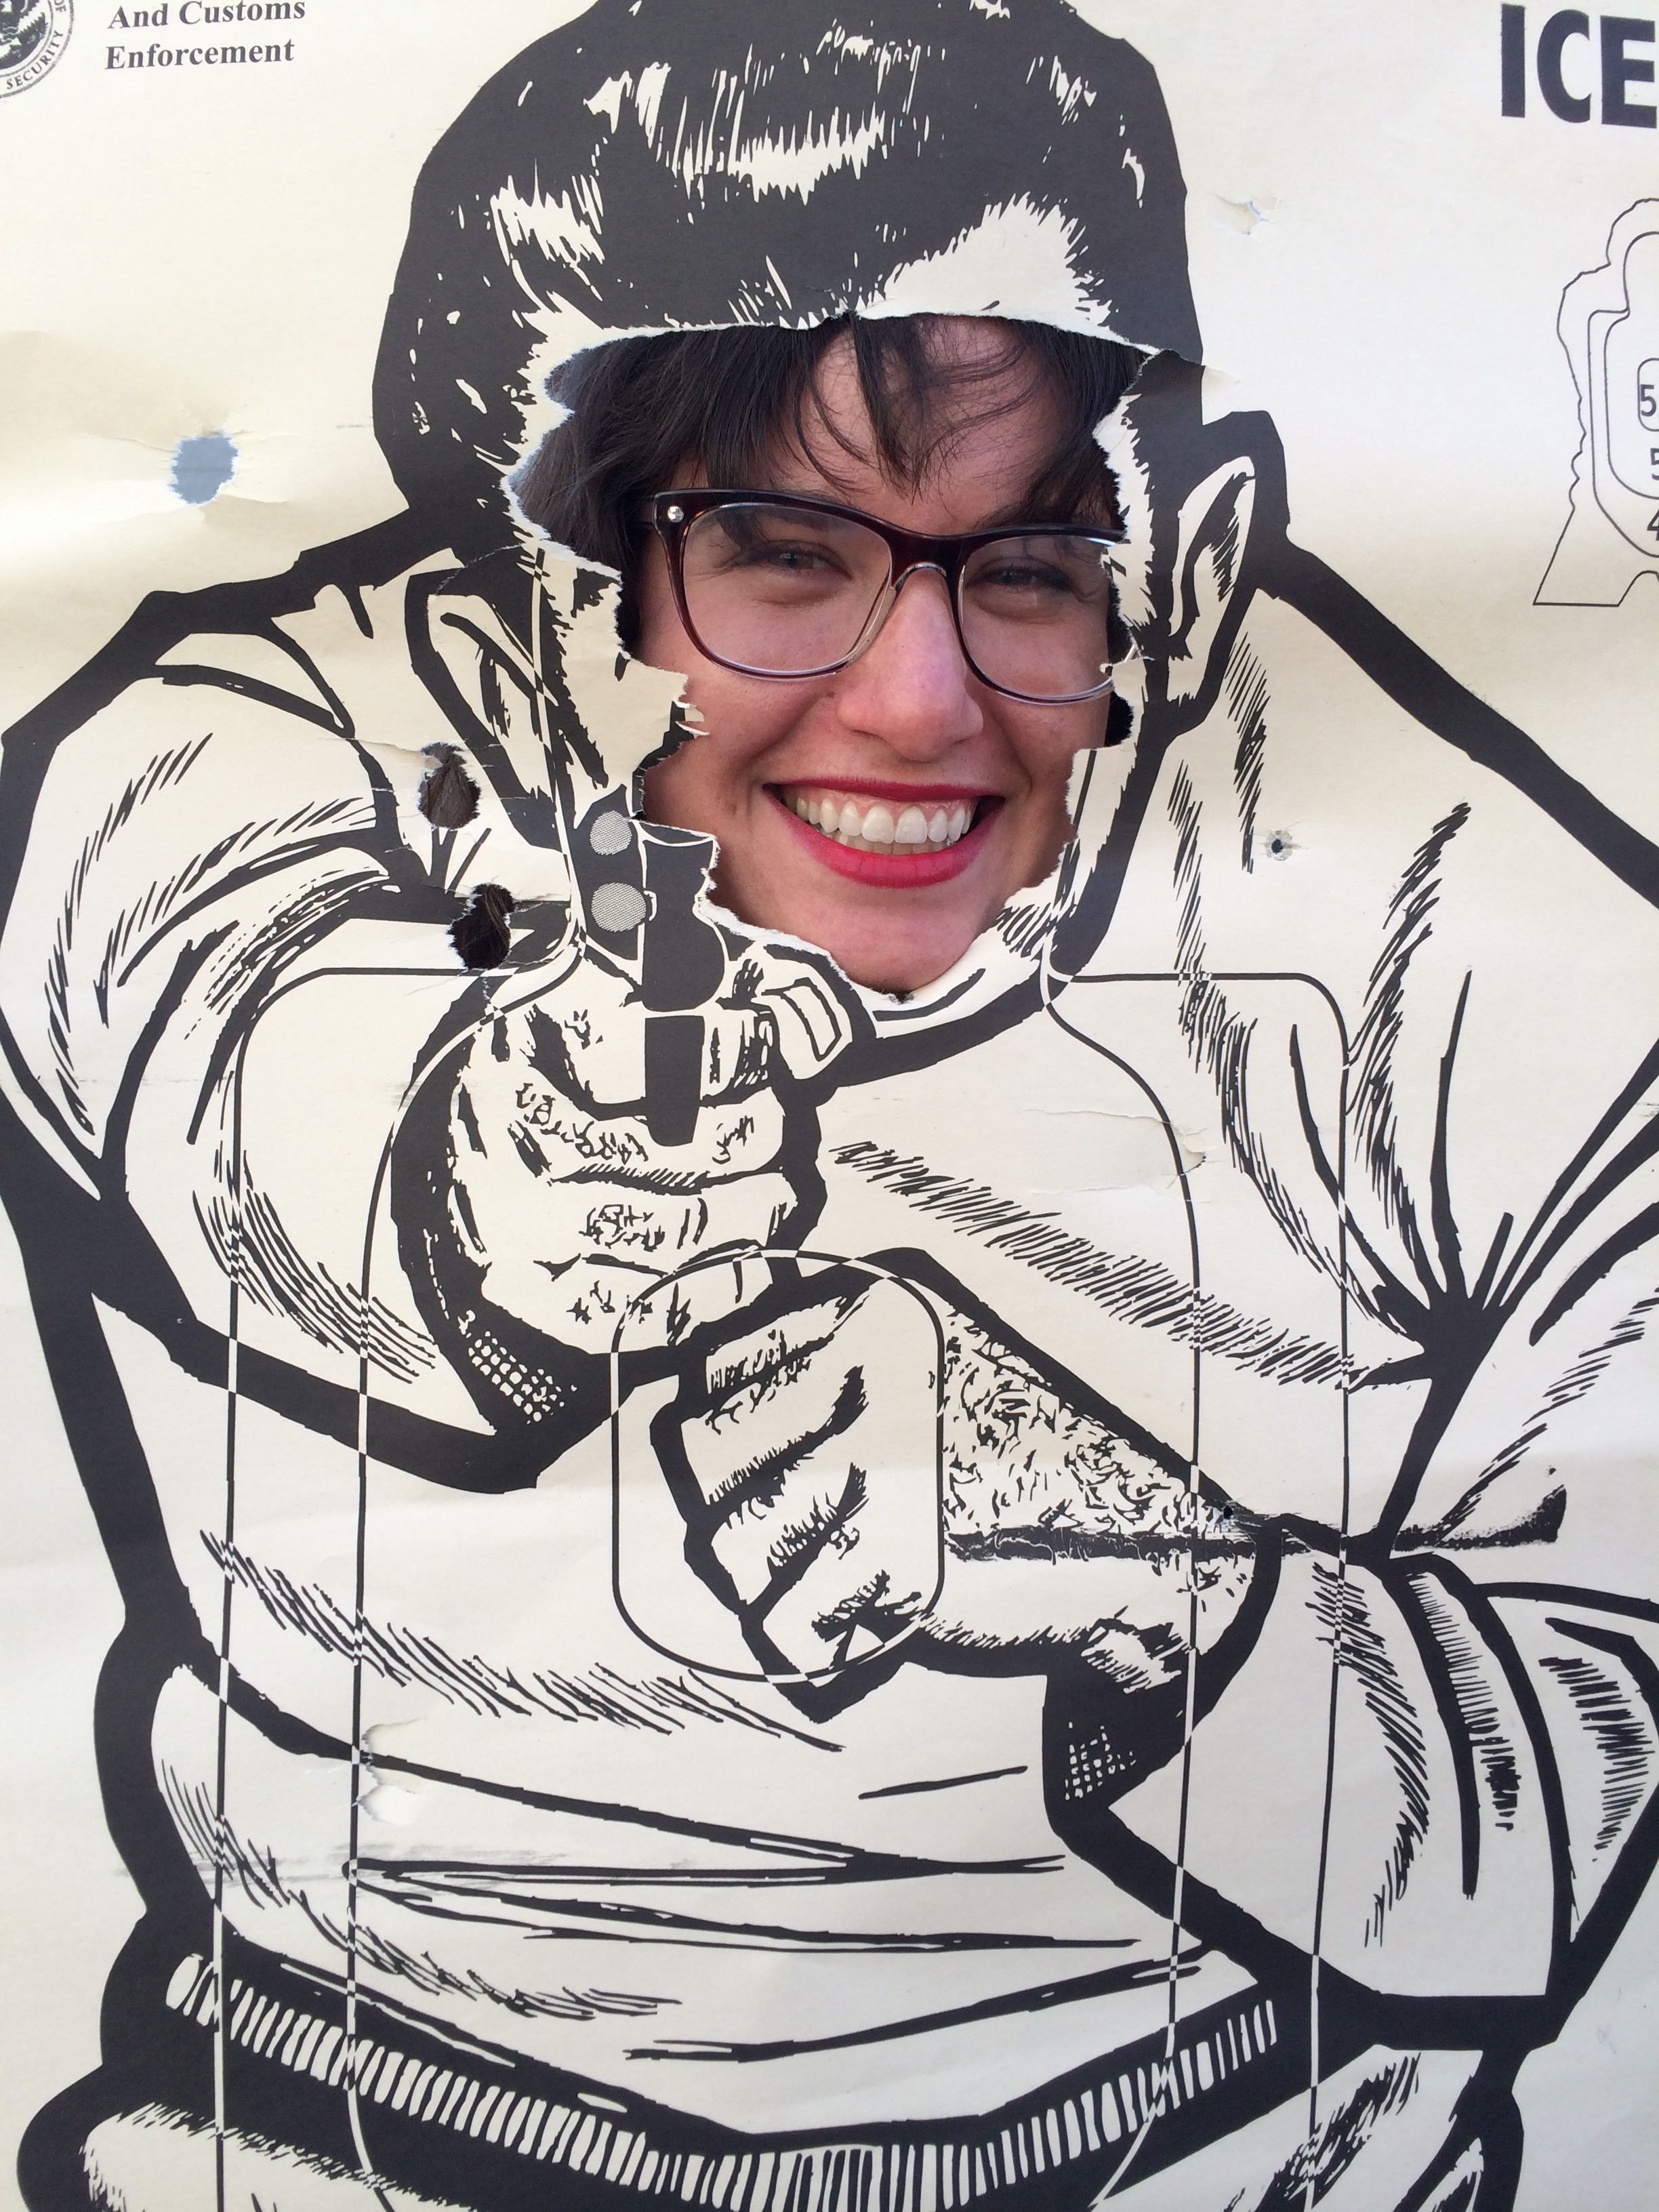 My trip to LA Gun Club taught me I am not good with a hand gun.